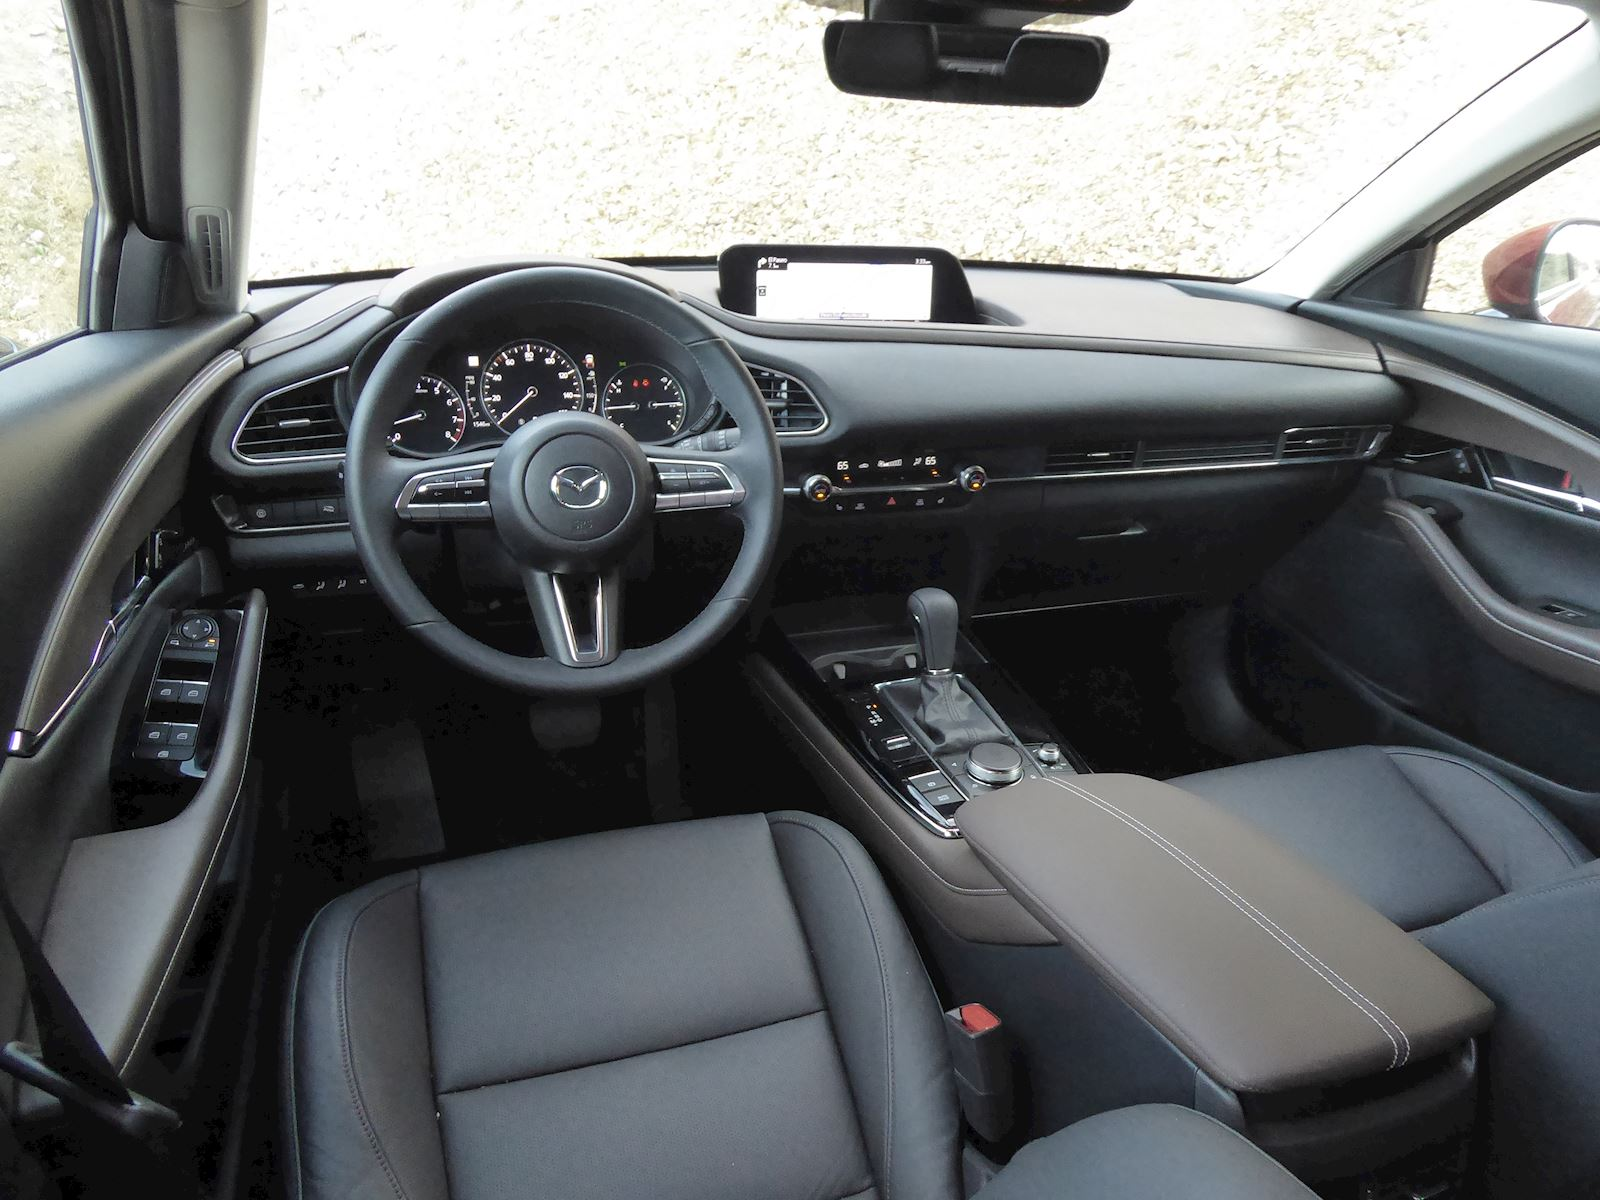 2020 Mazda CX-30 interior finish dashboard